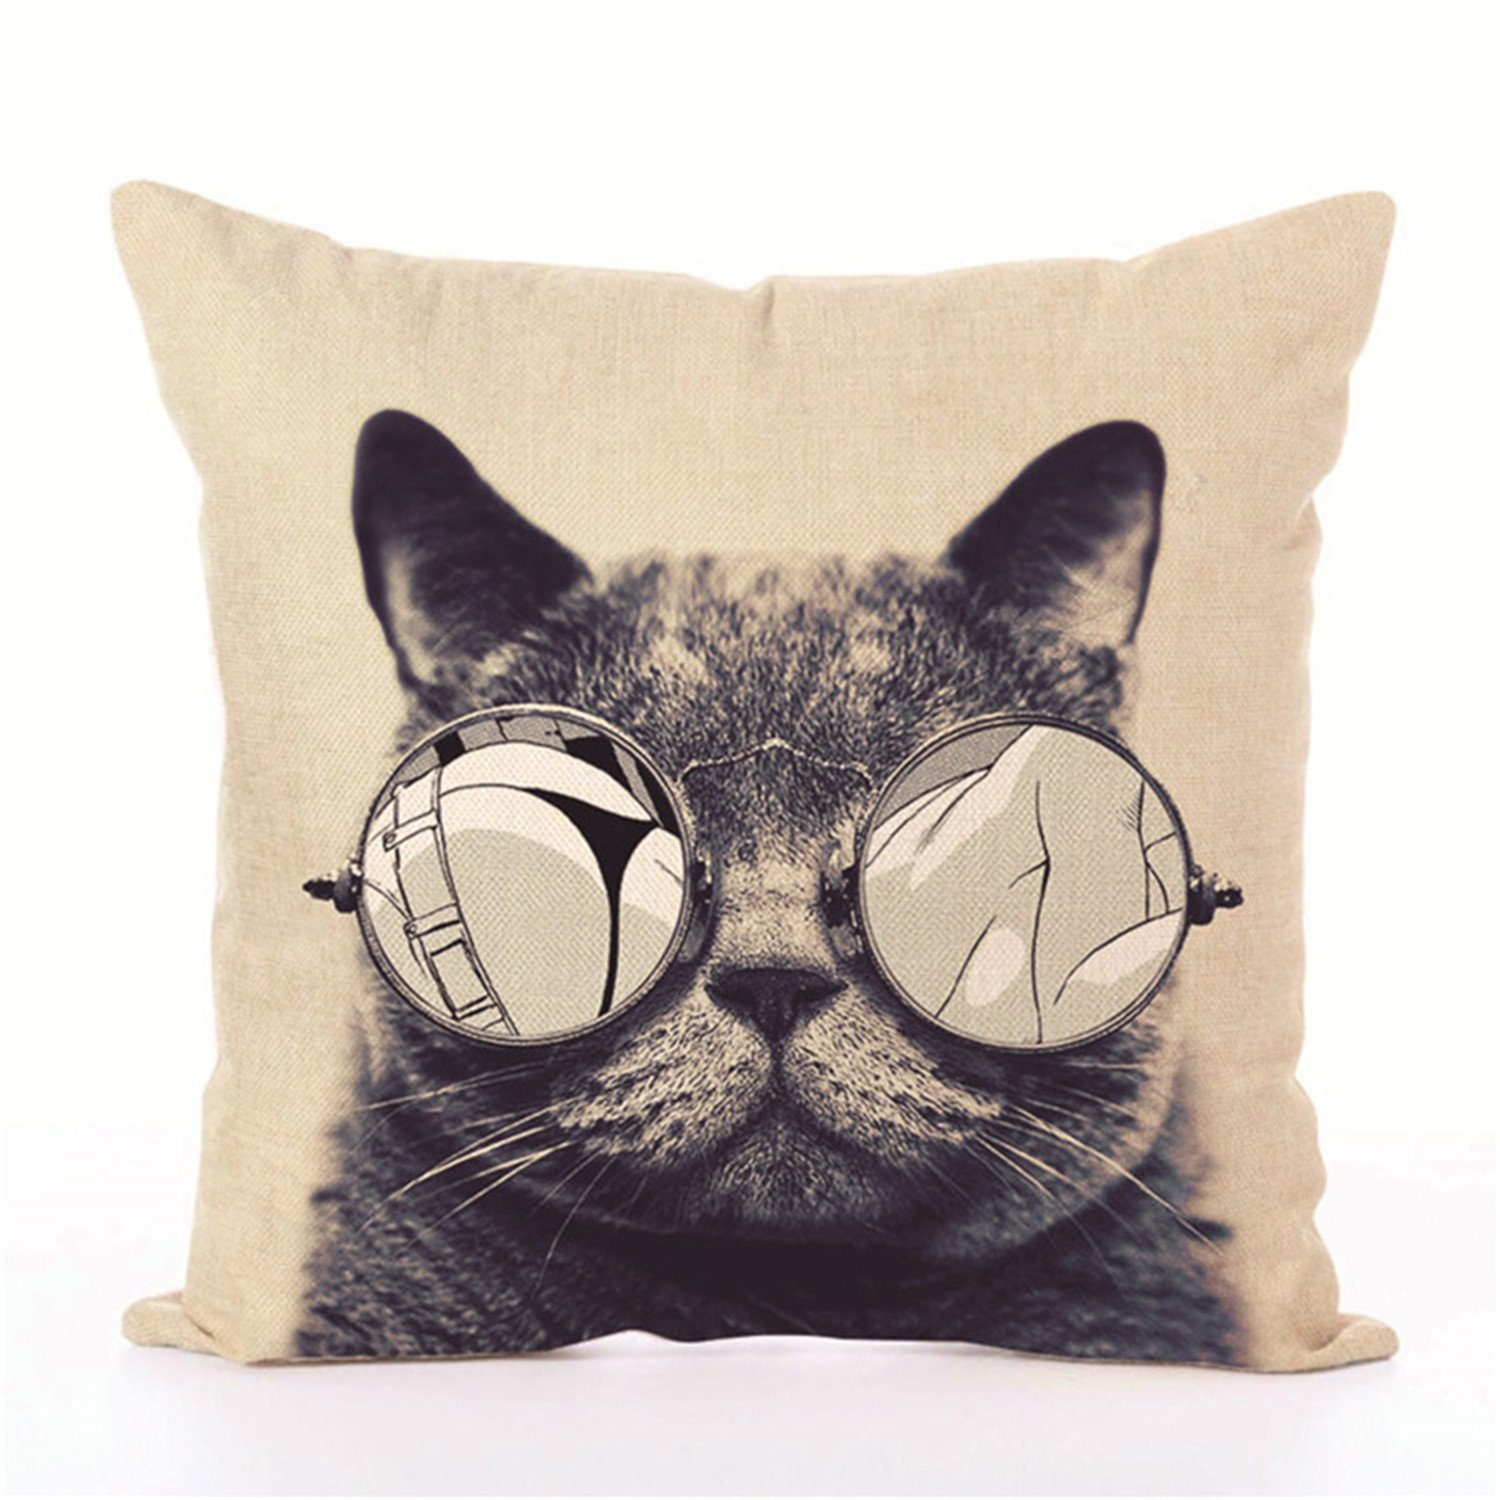 MRxcff Simple Colorful Cute Cat Style Pillow Cover Home Room Hotel Quality Decorative Pillowcase Bedroom Custom Hot Animal Pillow Cover Pillow Cover 14 45X45Cm